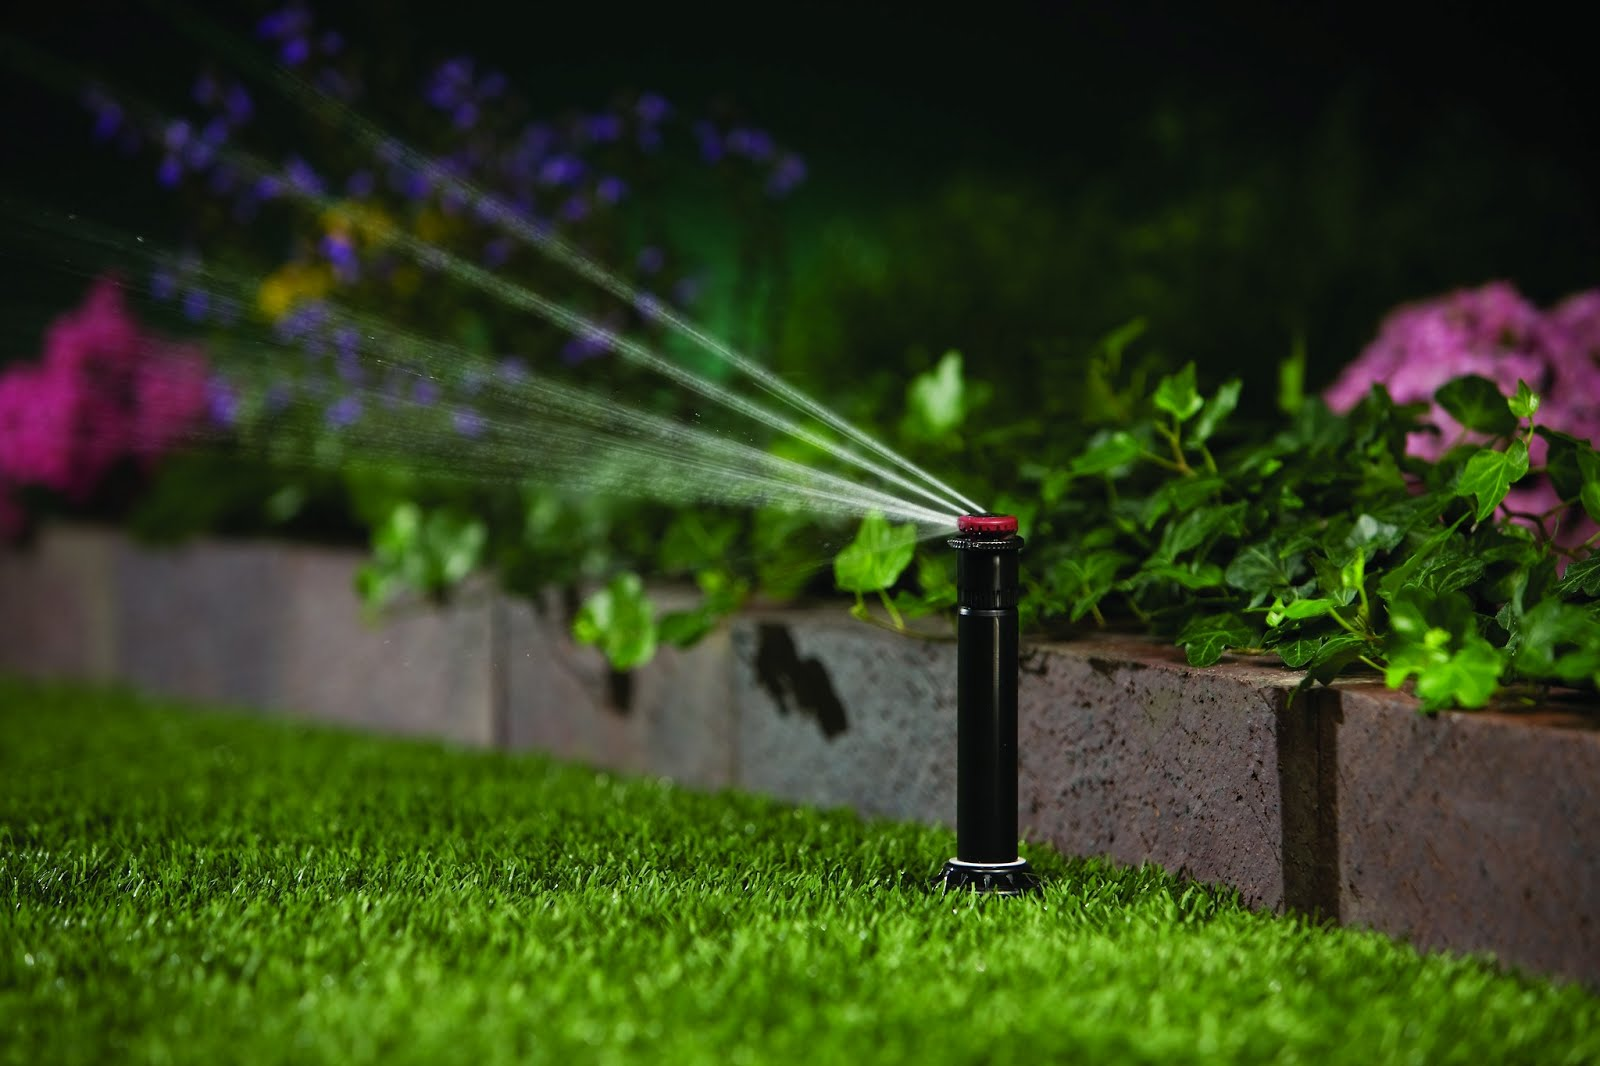 Sprinkler Services-Midland TX Professional Landscapers & Outdoor Living Designs-We offer Landscape Design, Outdoor Patios & Pergolas, Outdoor Living Spaces, Stonescapes, Residential & Commercial Landscaping, Irrigation Installation & Repairs, Drainage Systems, Landscape Lighting, Outdoor Living Spaces, Tree Service, Lawn Service, and more.